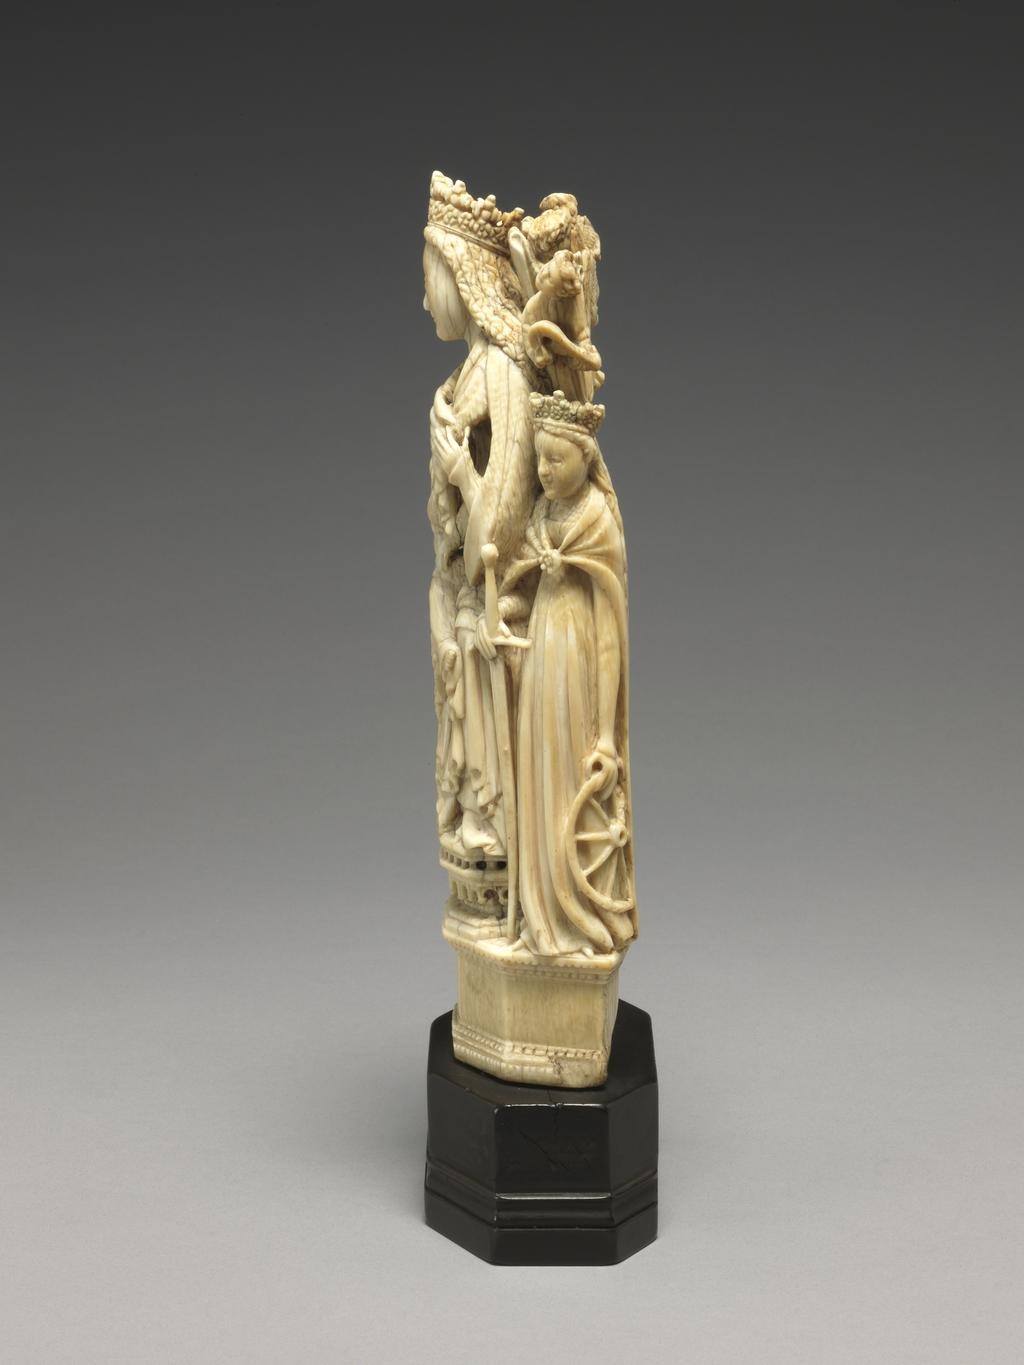 An image of Sculpture / Figure Group. The Virgin and Child with St Dorothy and St Catherine. Virgin and Child seated on a throne with high back, on the top of which stand four small music-making angels. On the left, St Dorothy holding a basket of roses, and on the right, St Catherine with wheel and sword. Carved ivory in the round, height, ivory, 18.9 cm, height, ivory and base, 22.5 cm, circa 1470-1530. German or Spanish.